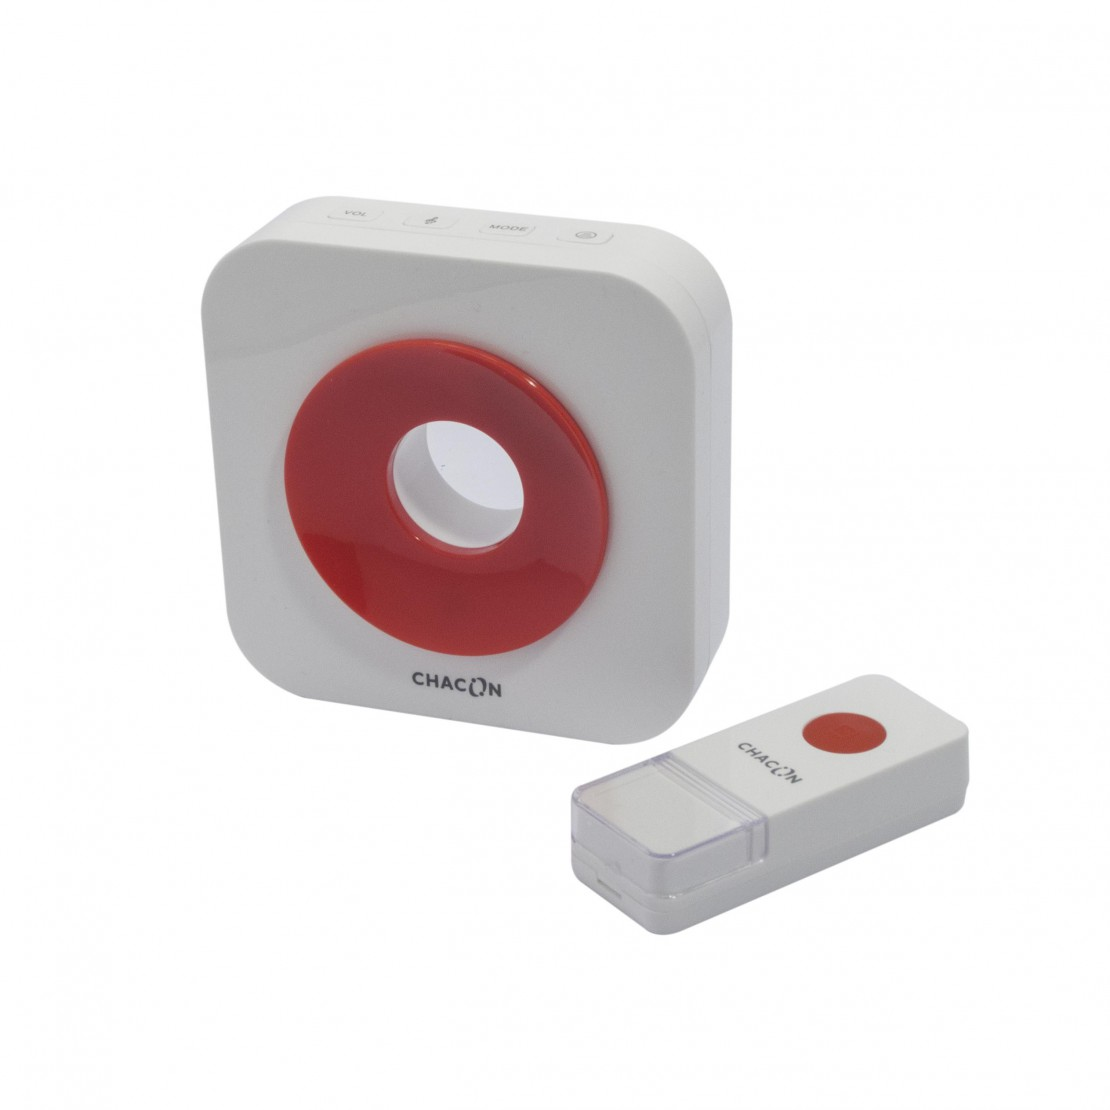 Designer red wireless doorbell